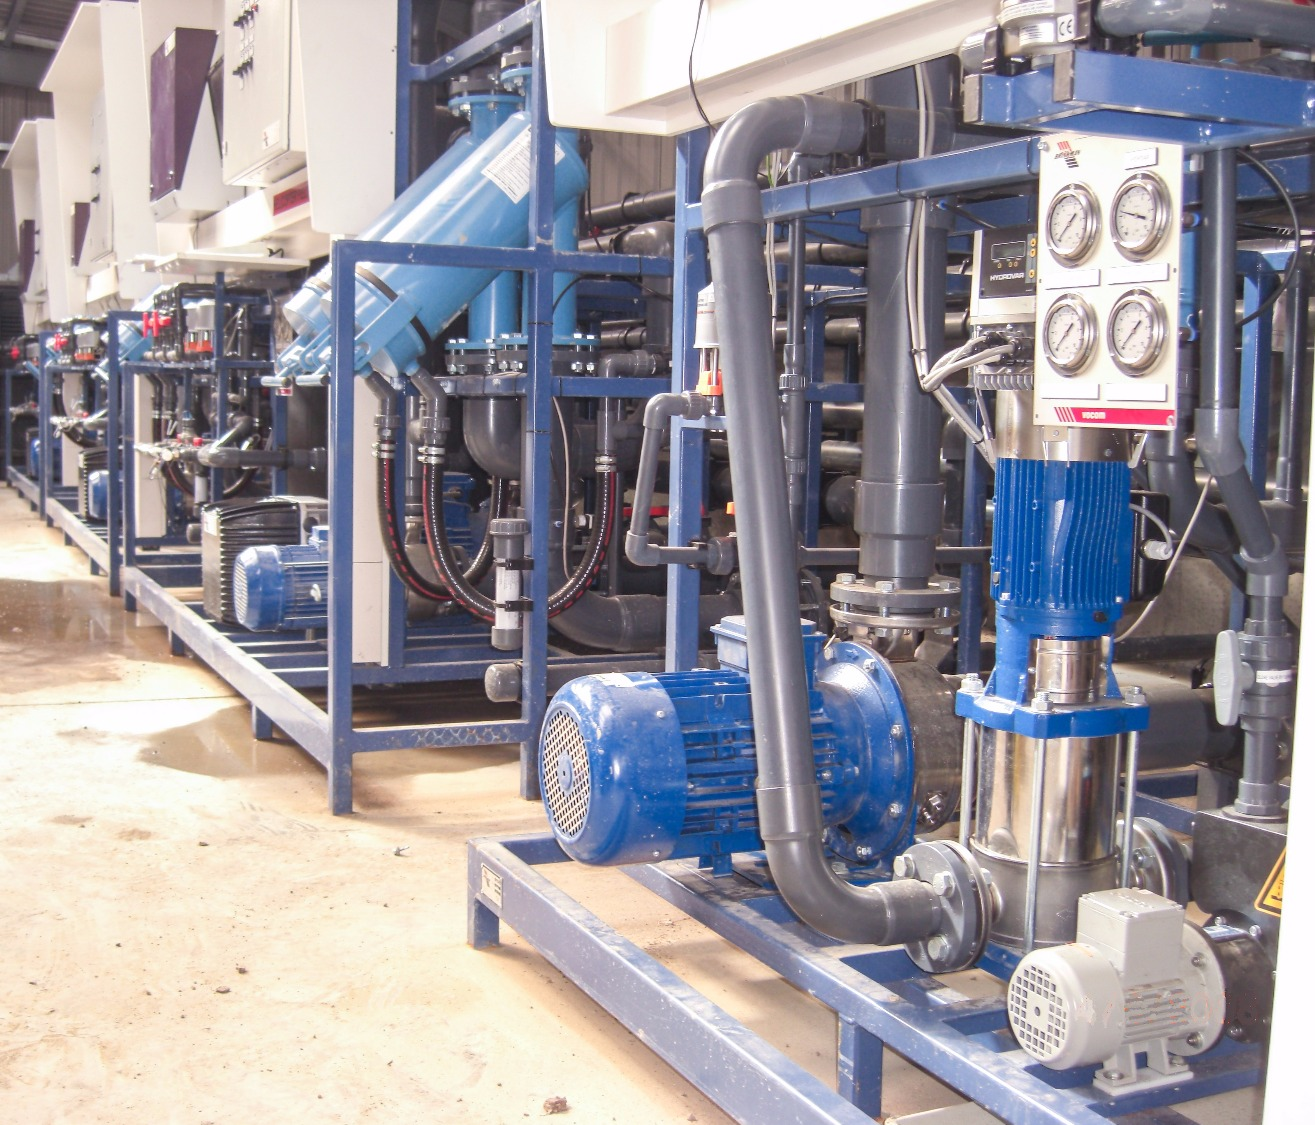 Pumping & control systems